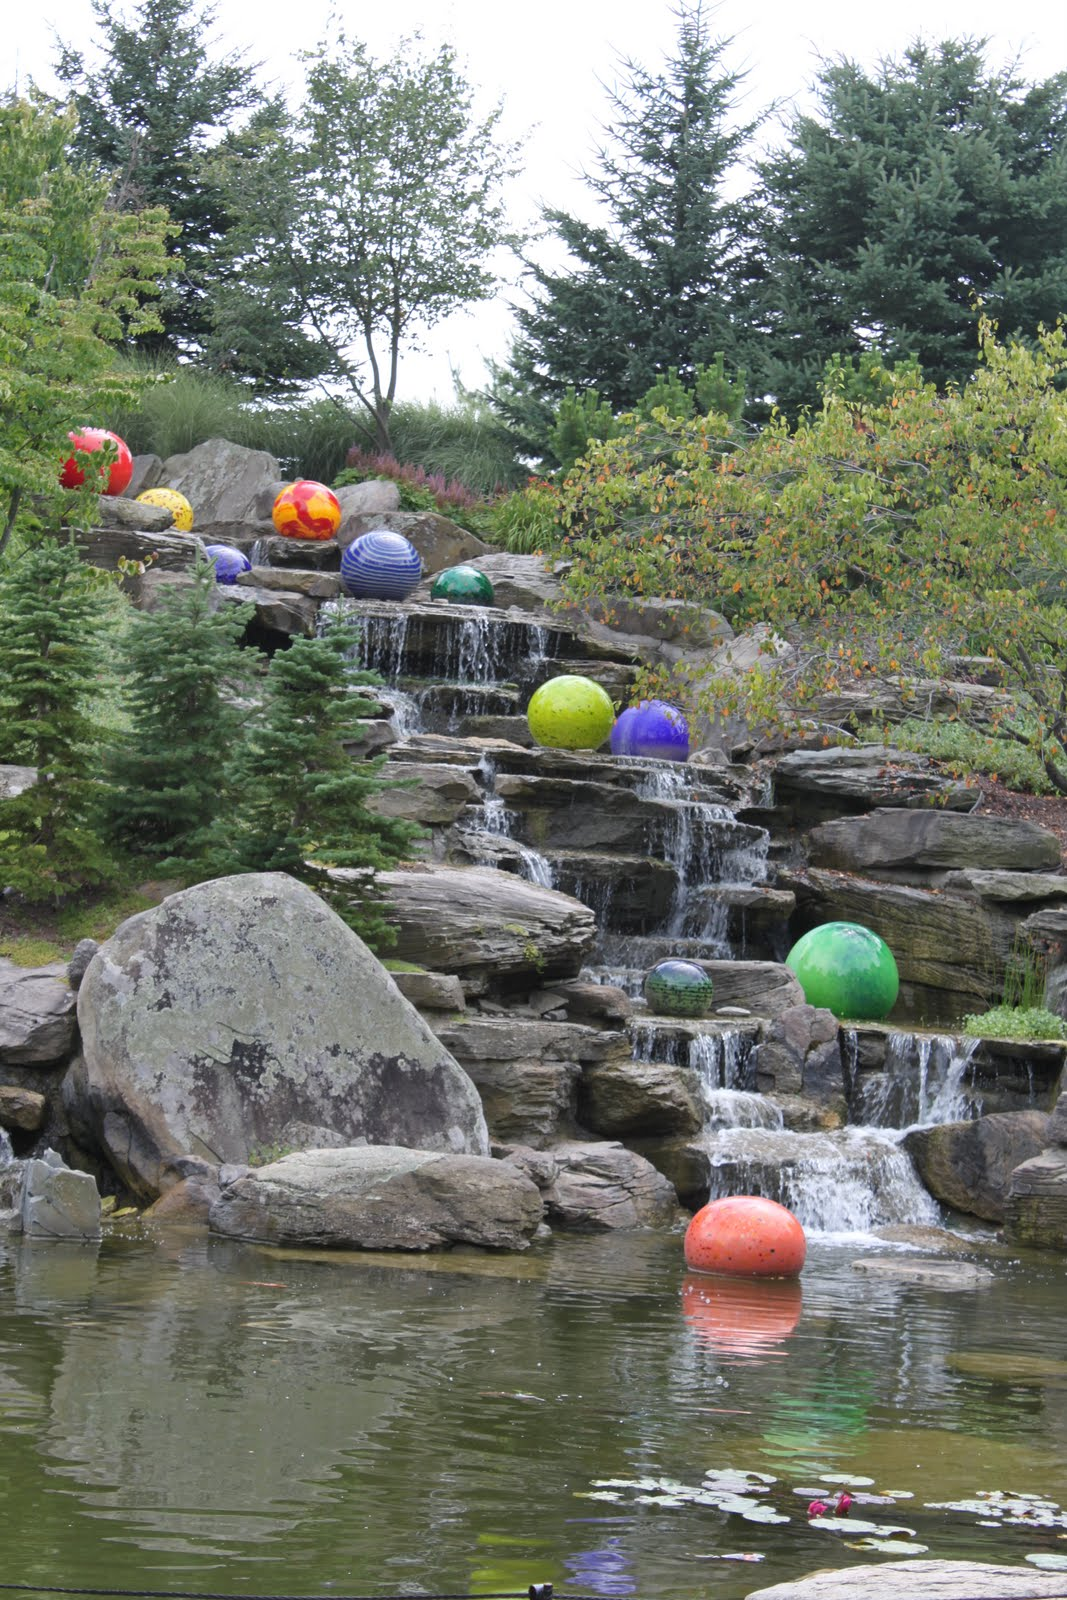 Frederik meijer gardens and sculpture park dale chihuly - Frederik meijer gardens and sculpture park ...